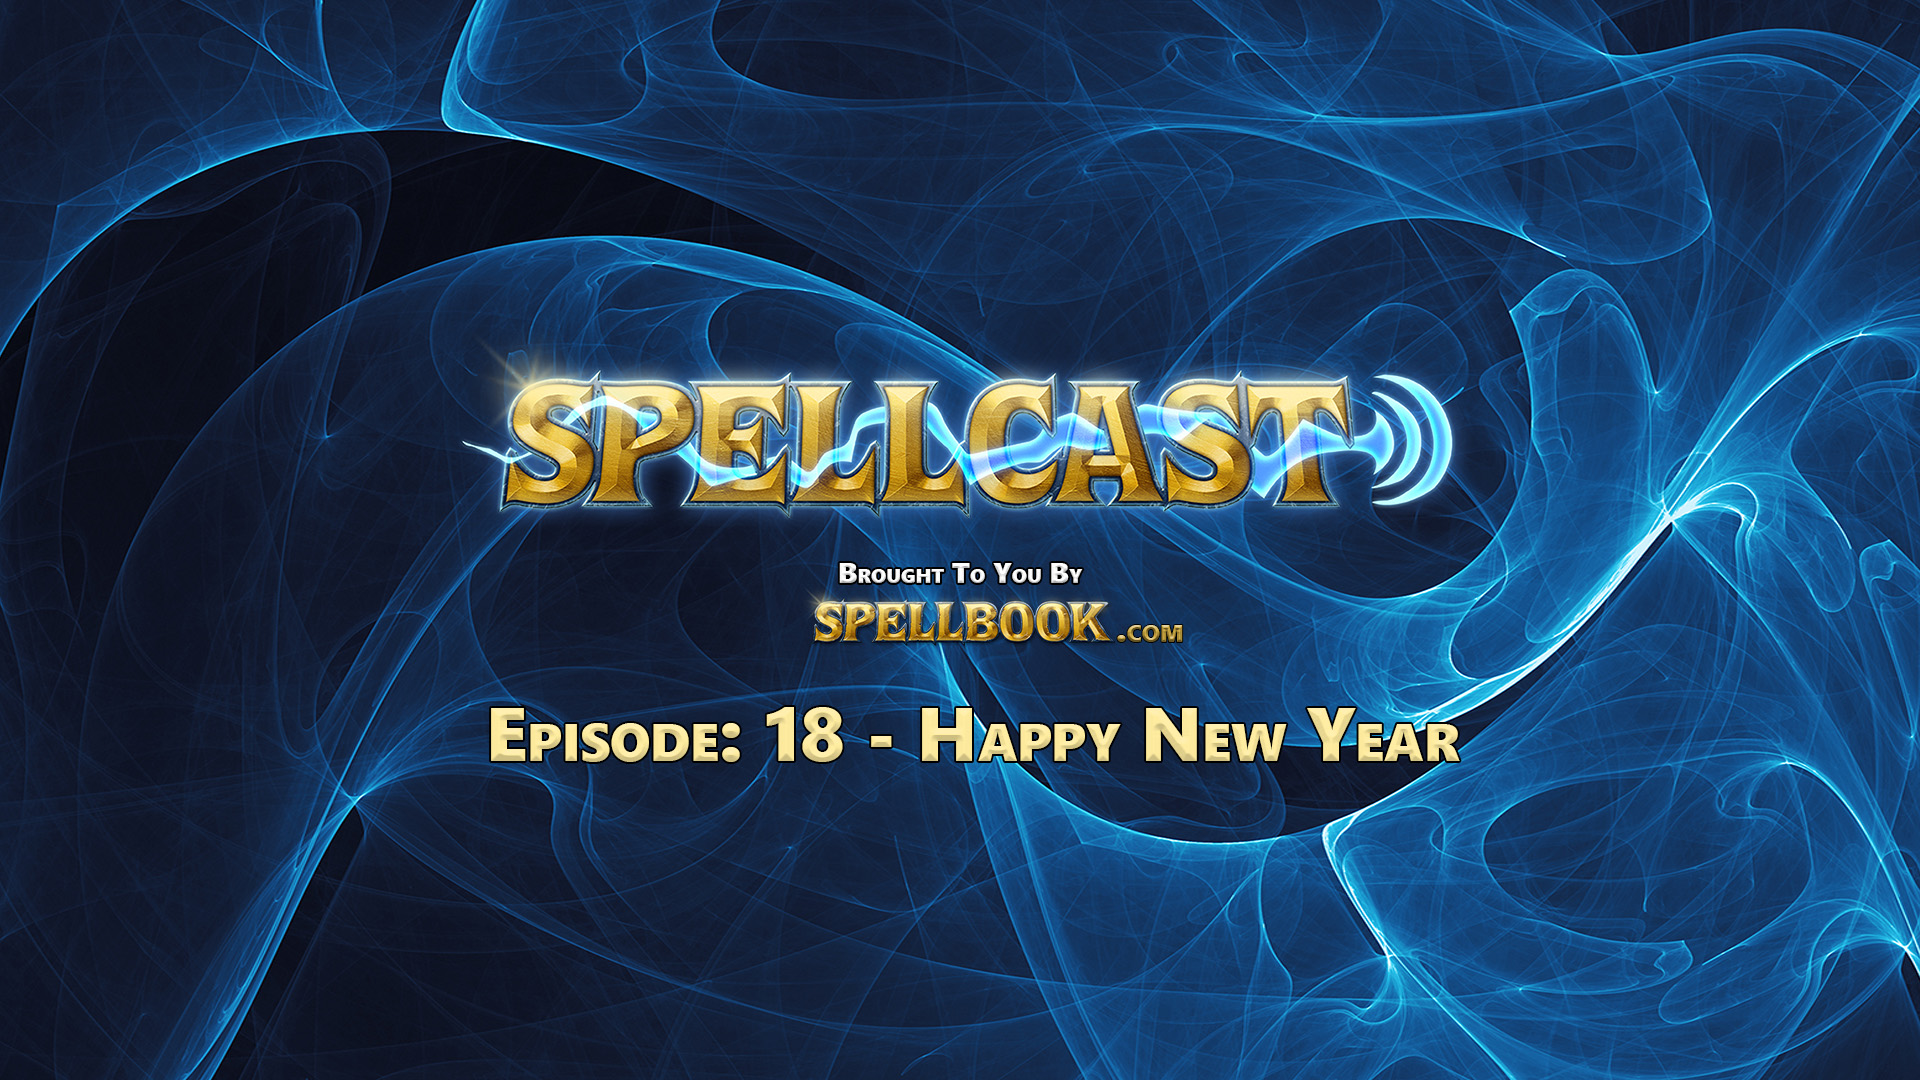 Spellcast Episode: 18 - Happy New Year